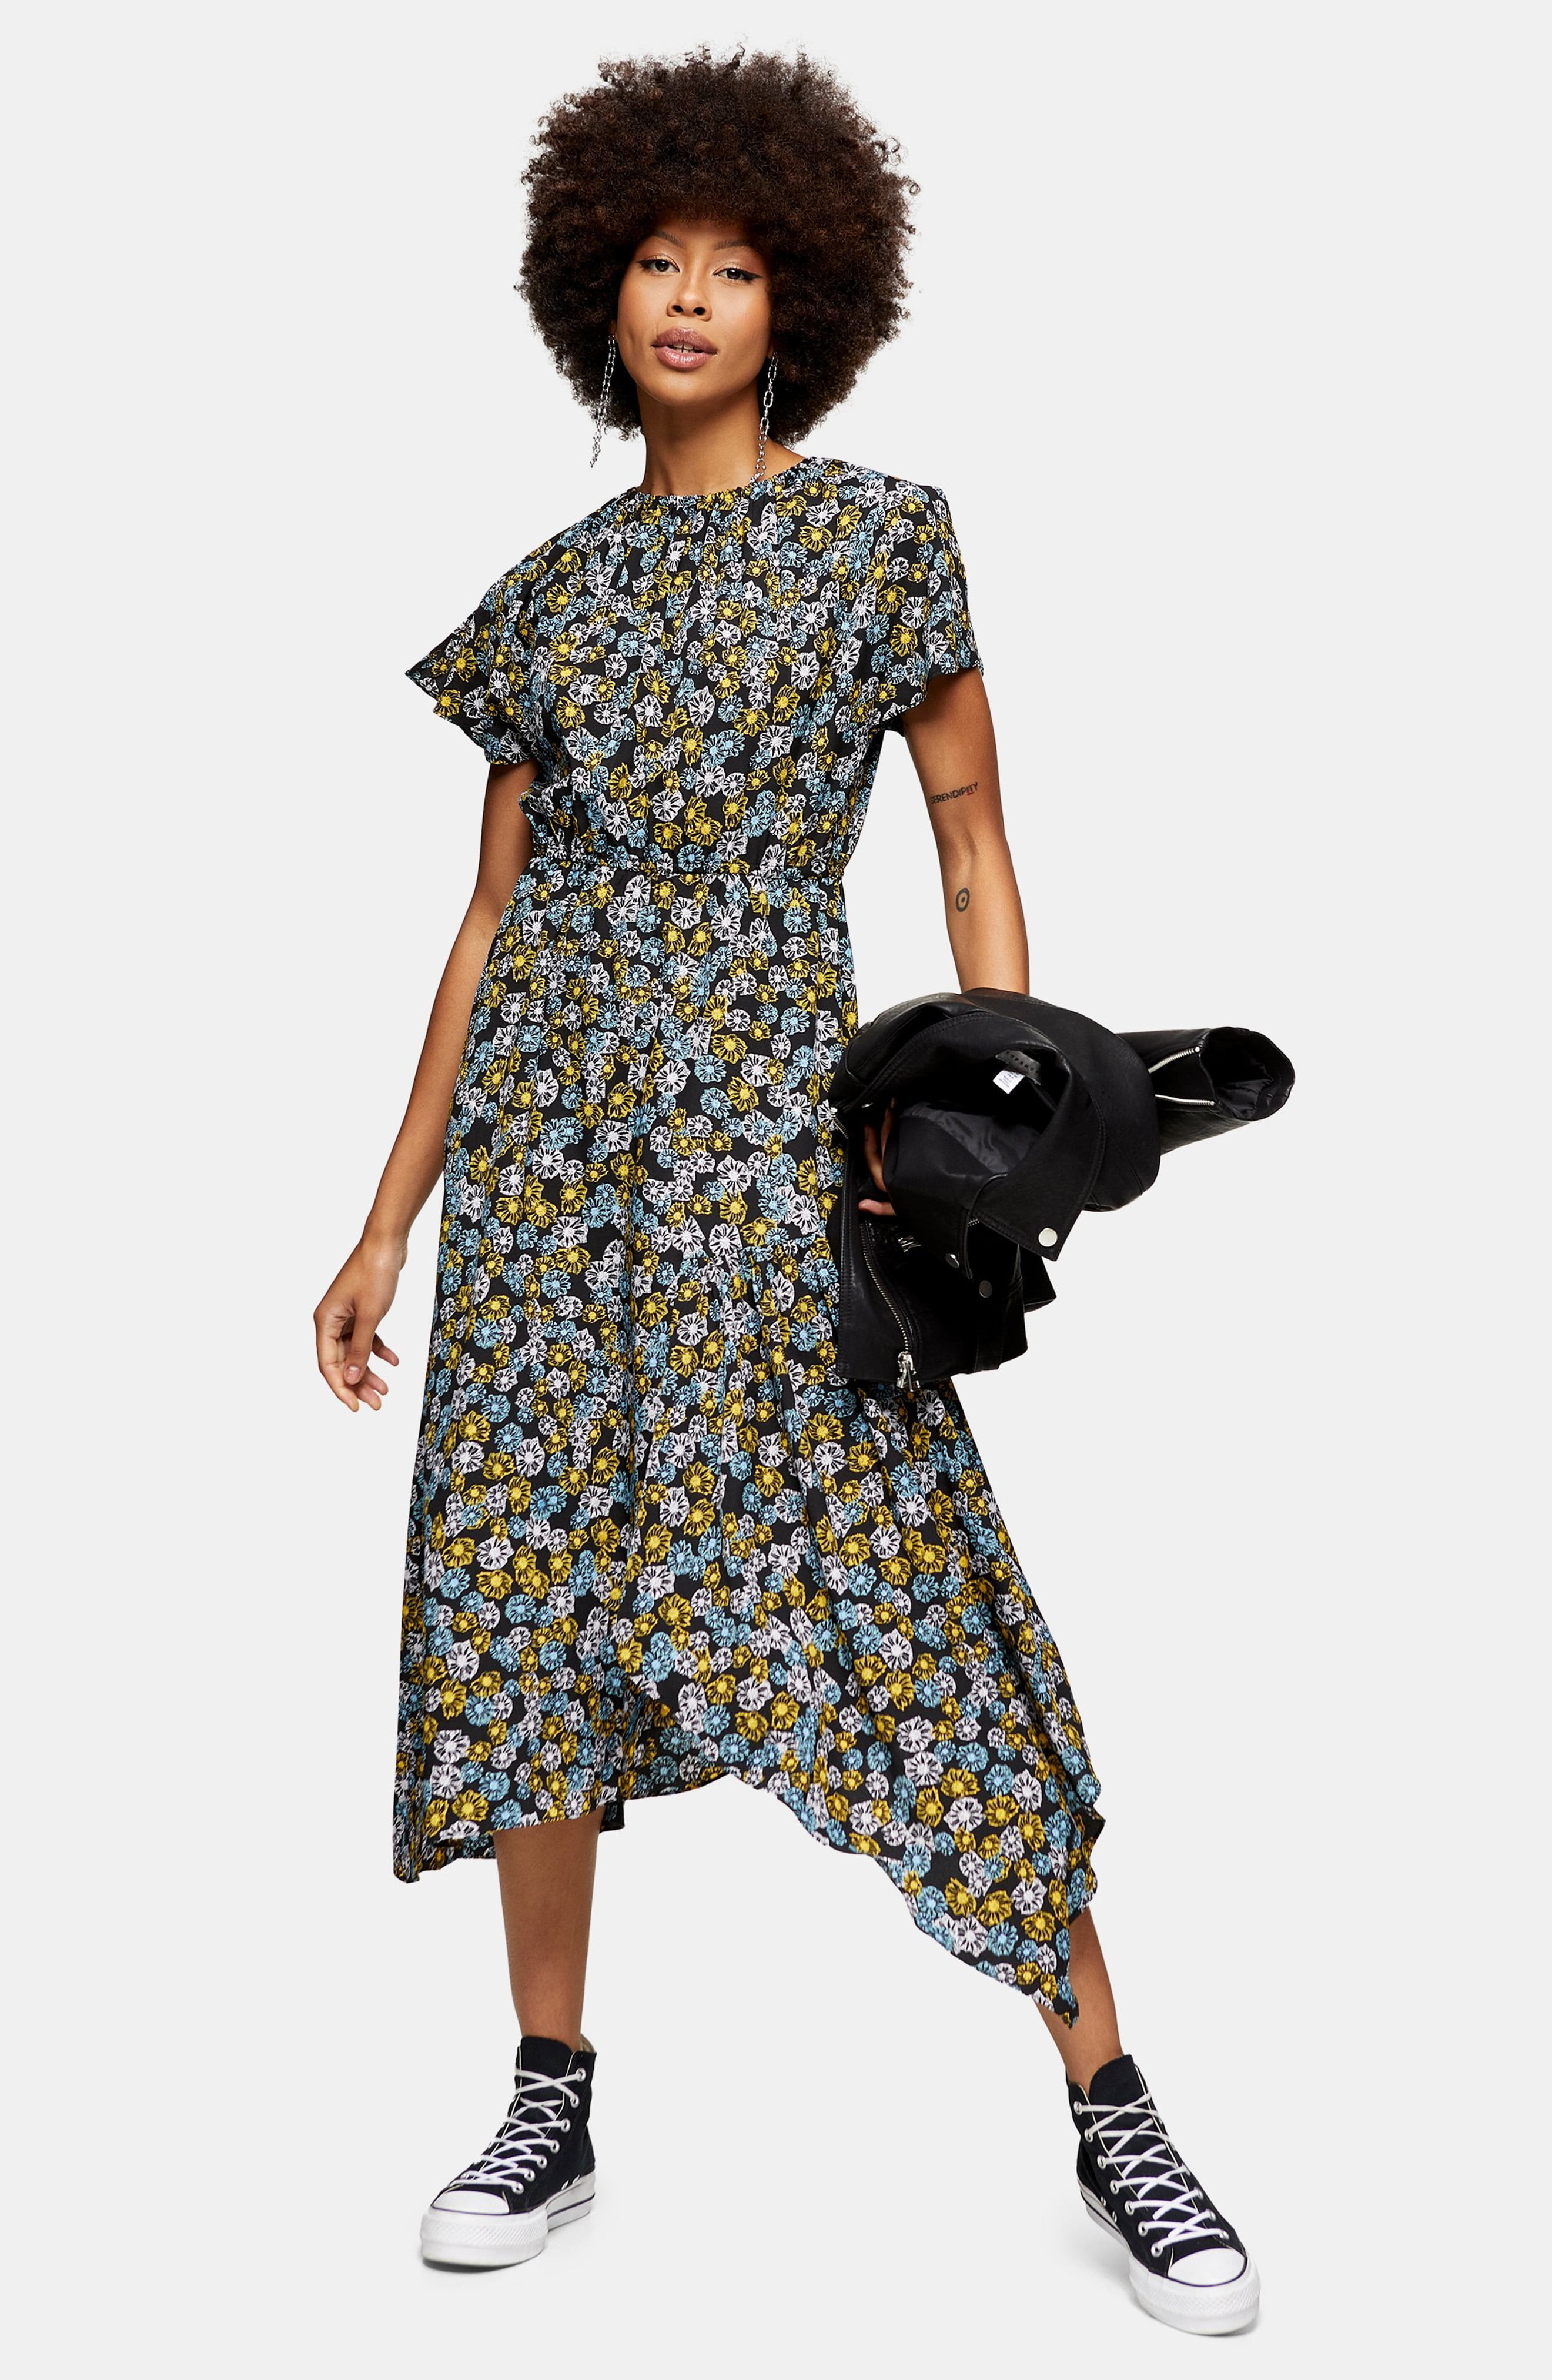 A model wears the Topshop floral print ruched dress with black chucks